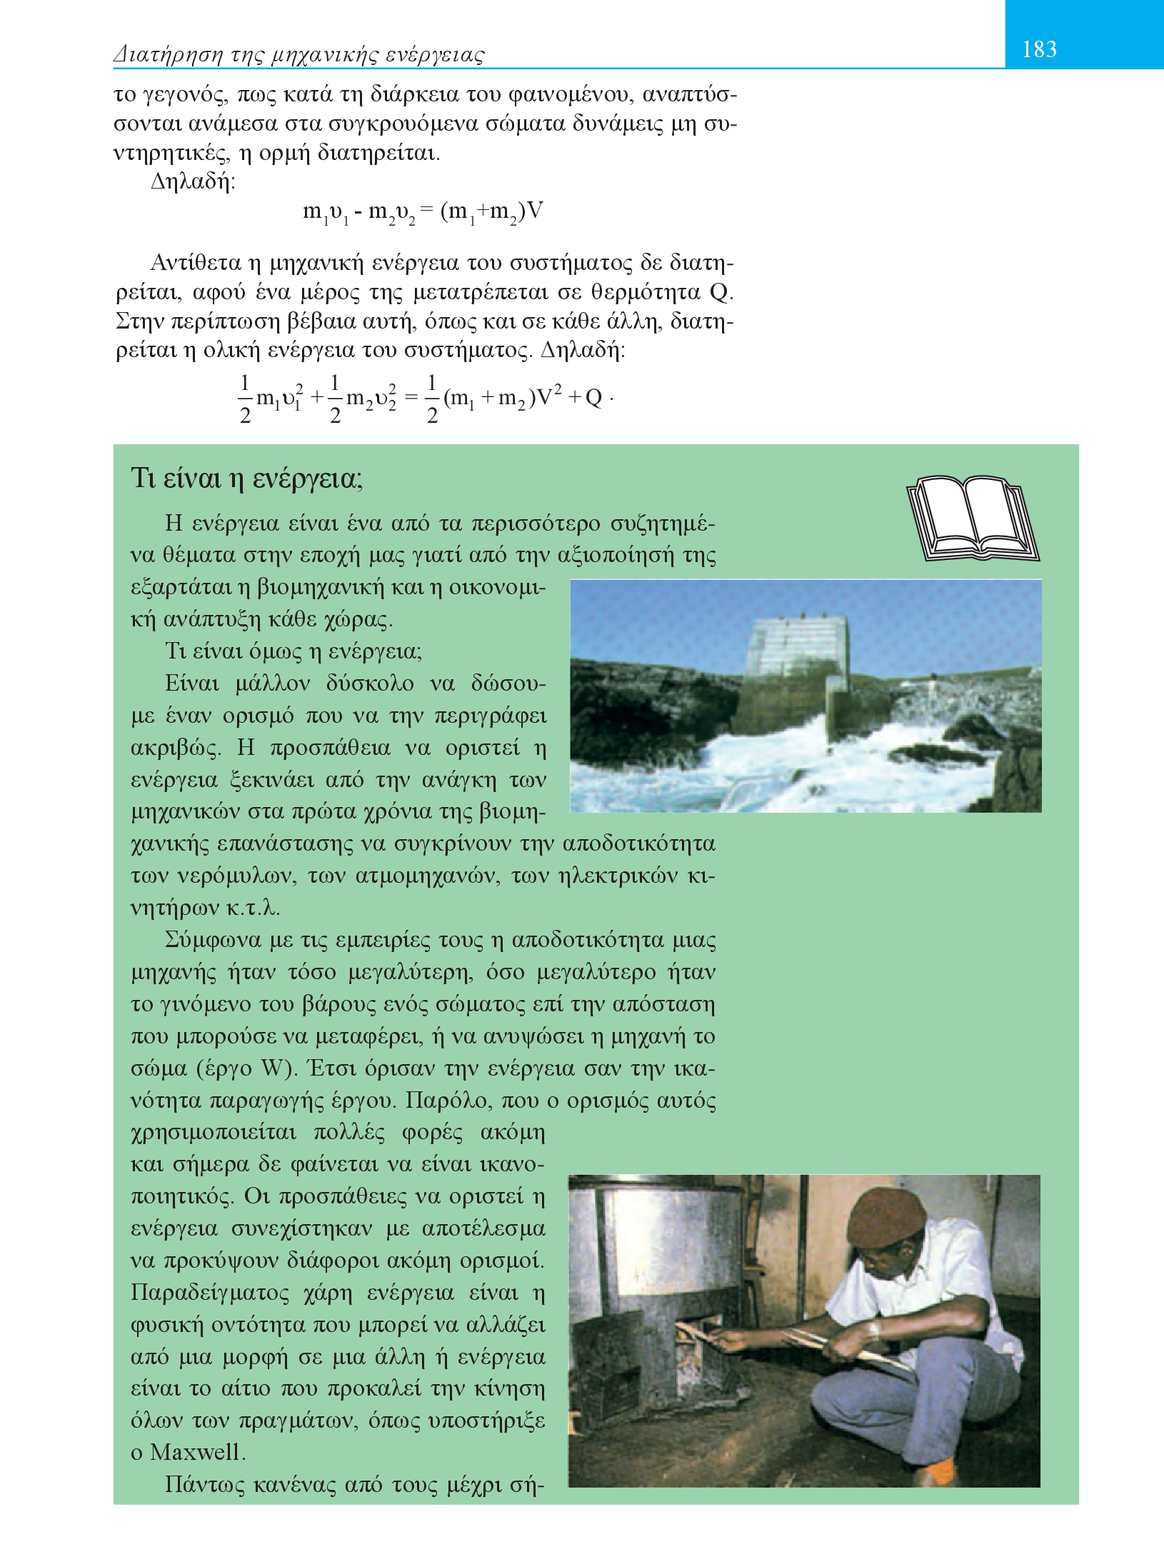 Page 184